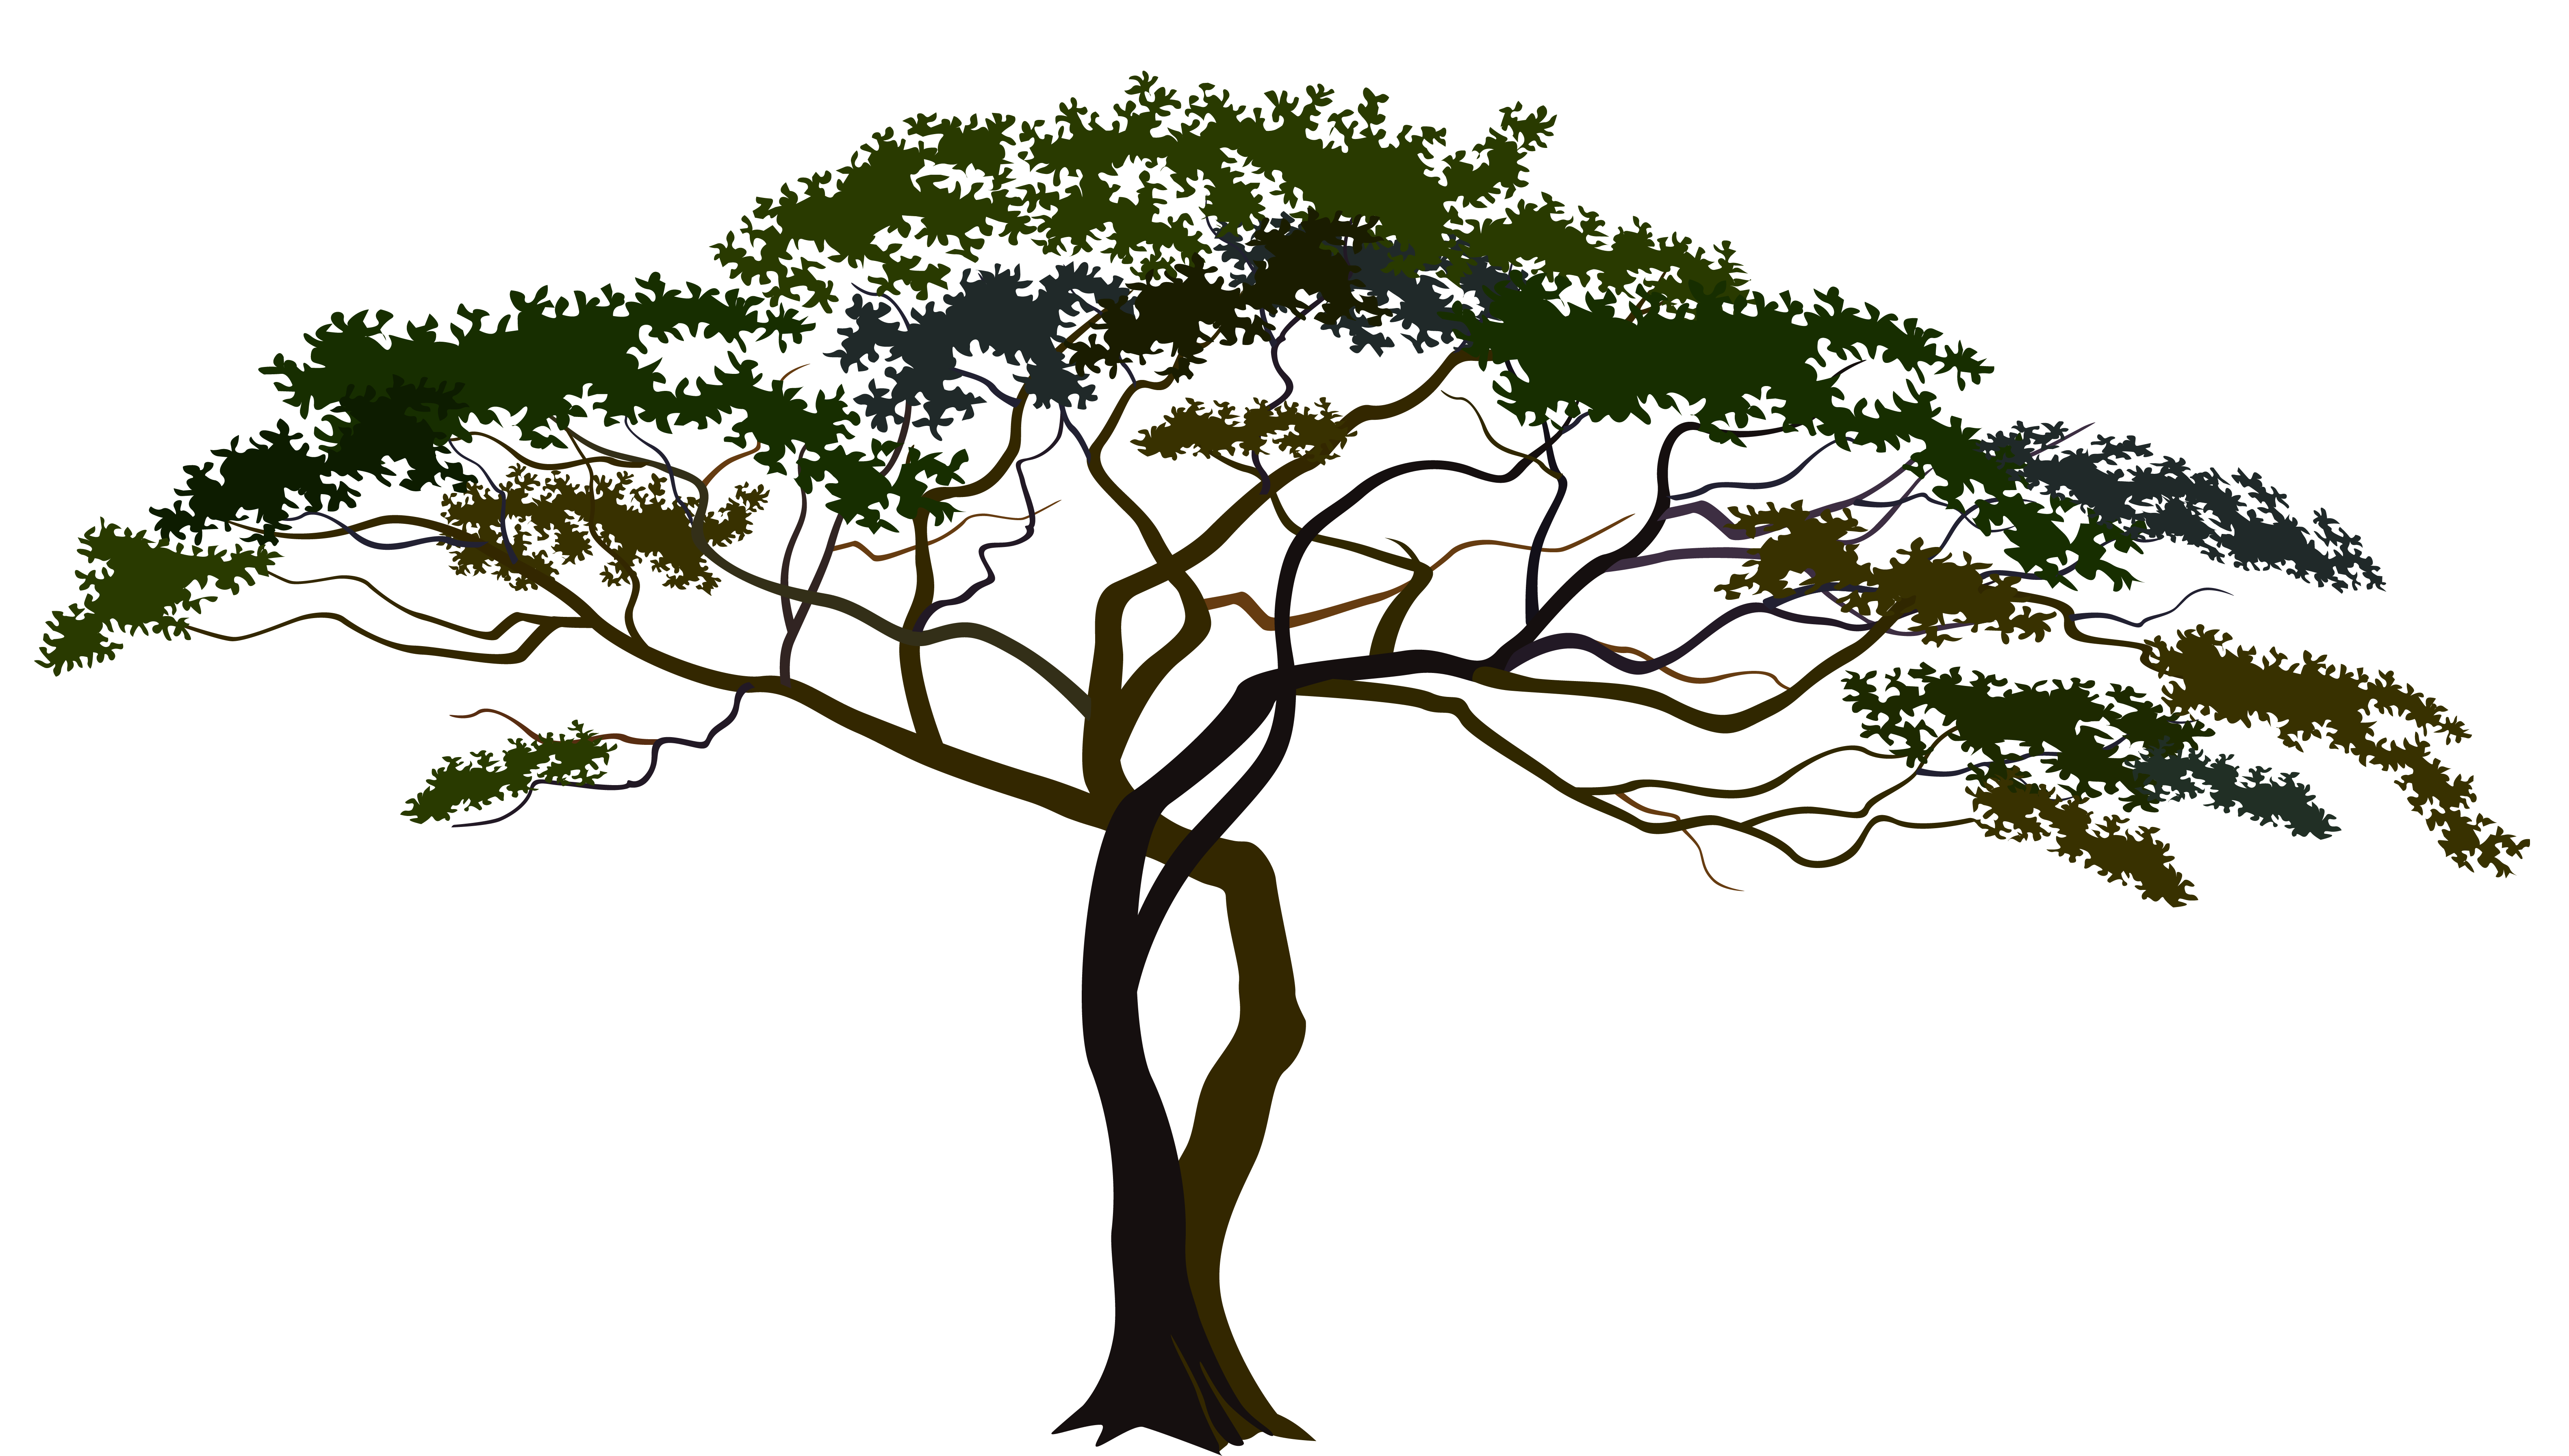 Free African Tree Png, Download Free Clip Art, Free Clip Art.